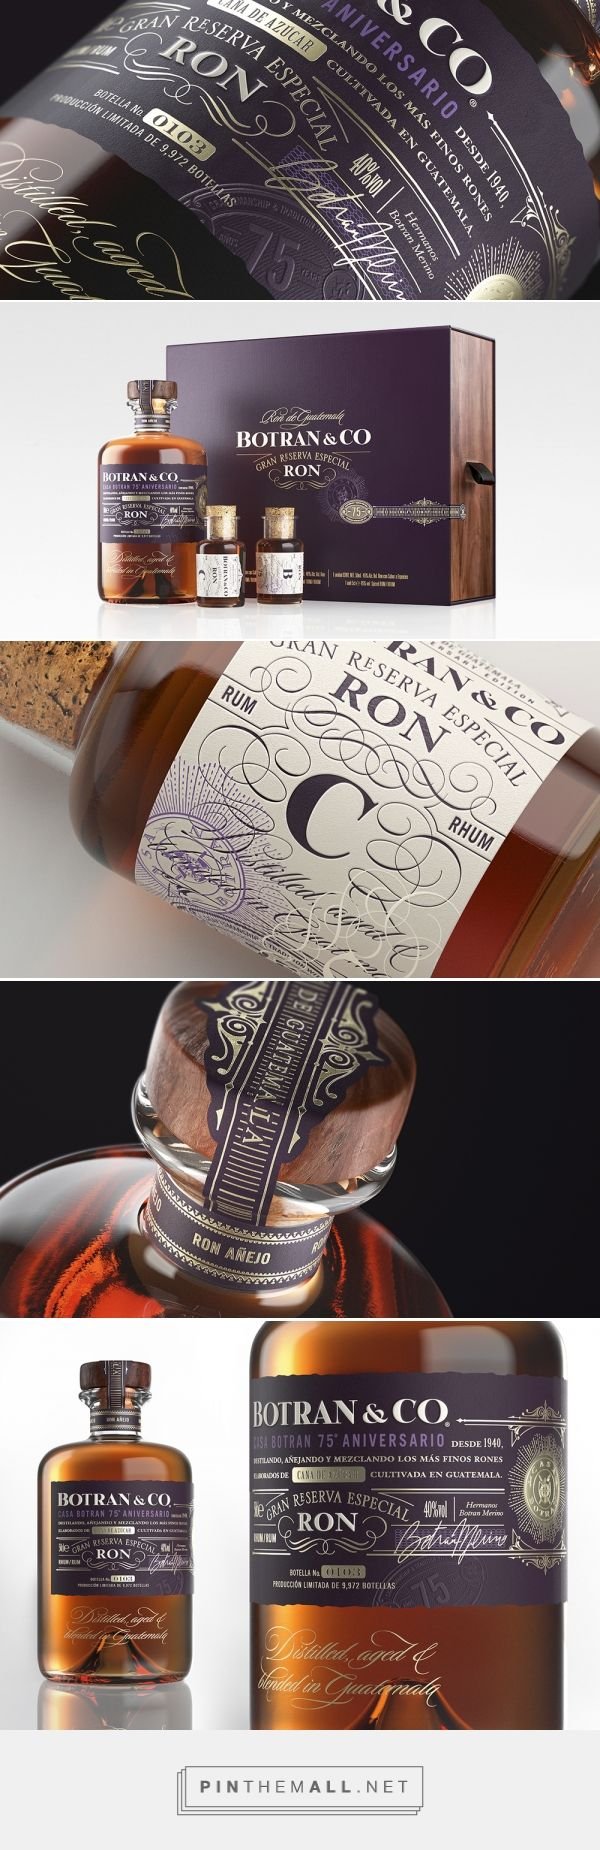 Botran & Co — The Dieline - Branding & Packaging - created via http://pinthemall.net